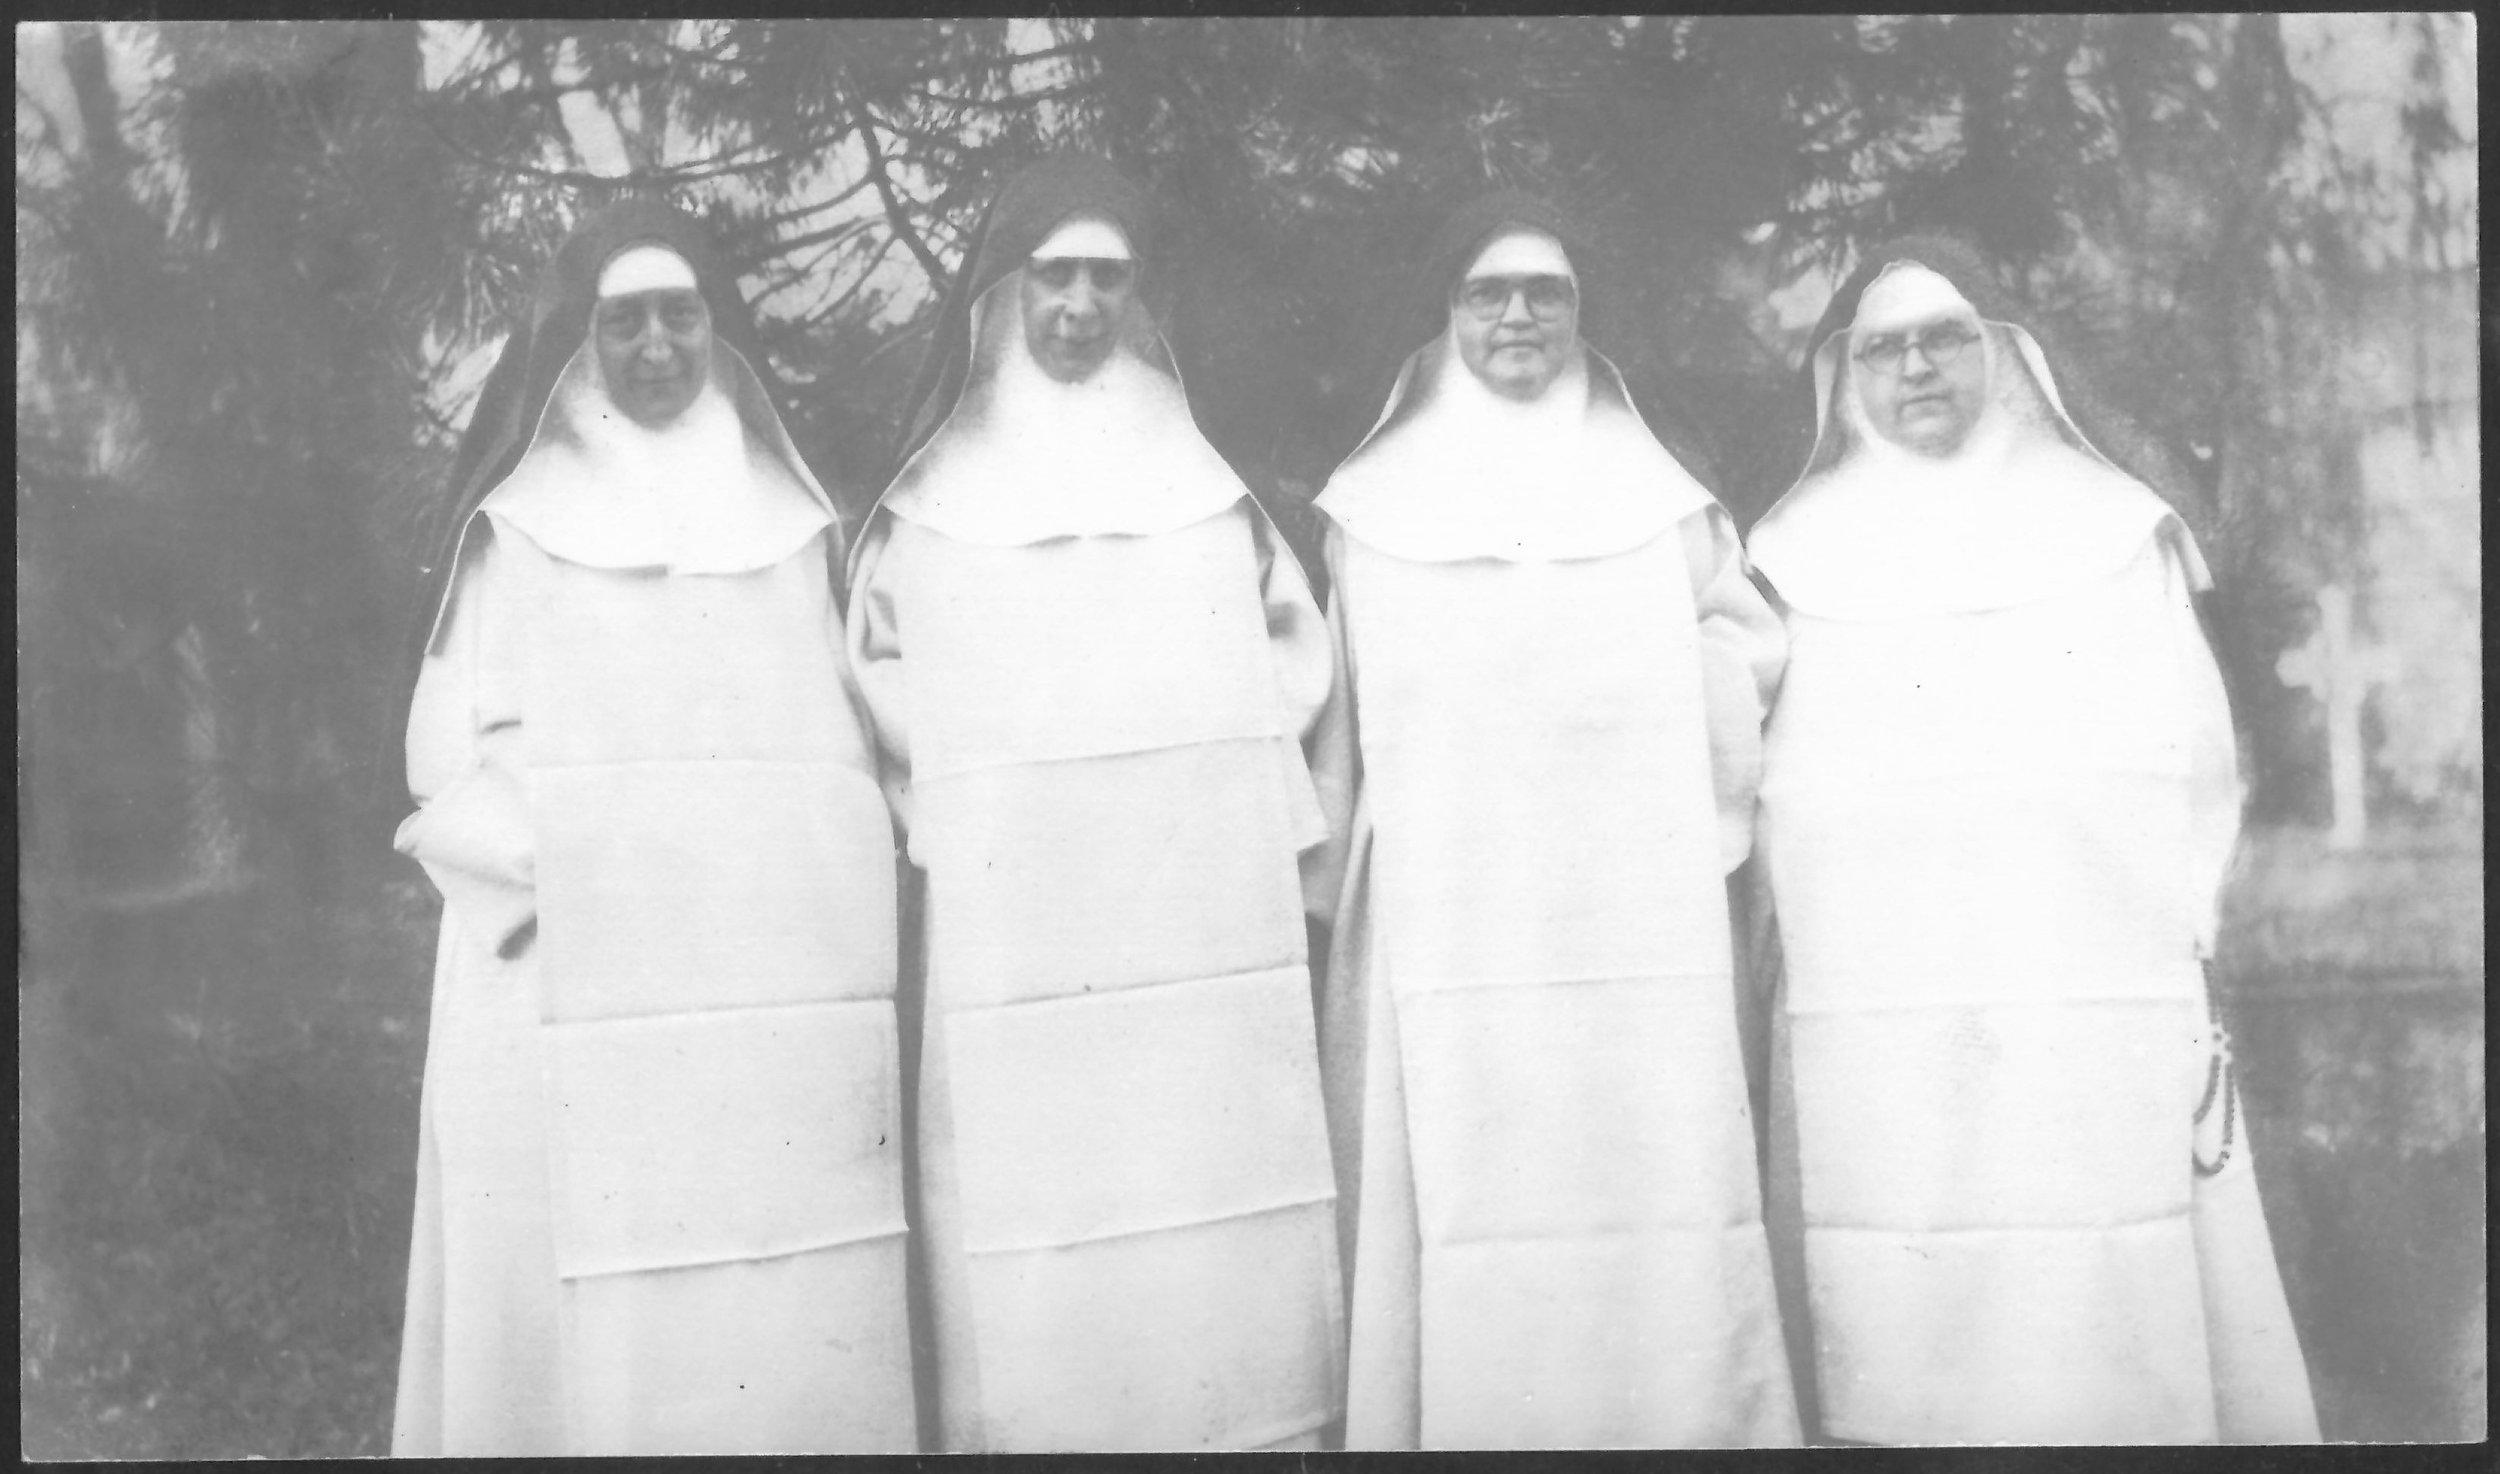 Sr. Mary Veronica, Sr. Mary of Jesus Crucified, Mother Mary Imelda and Sr. Mary Emmeline